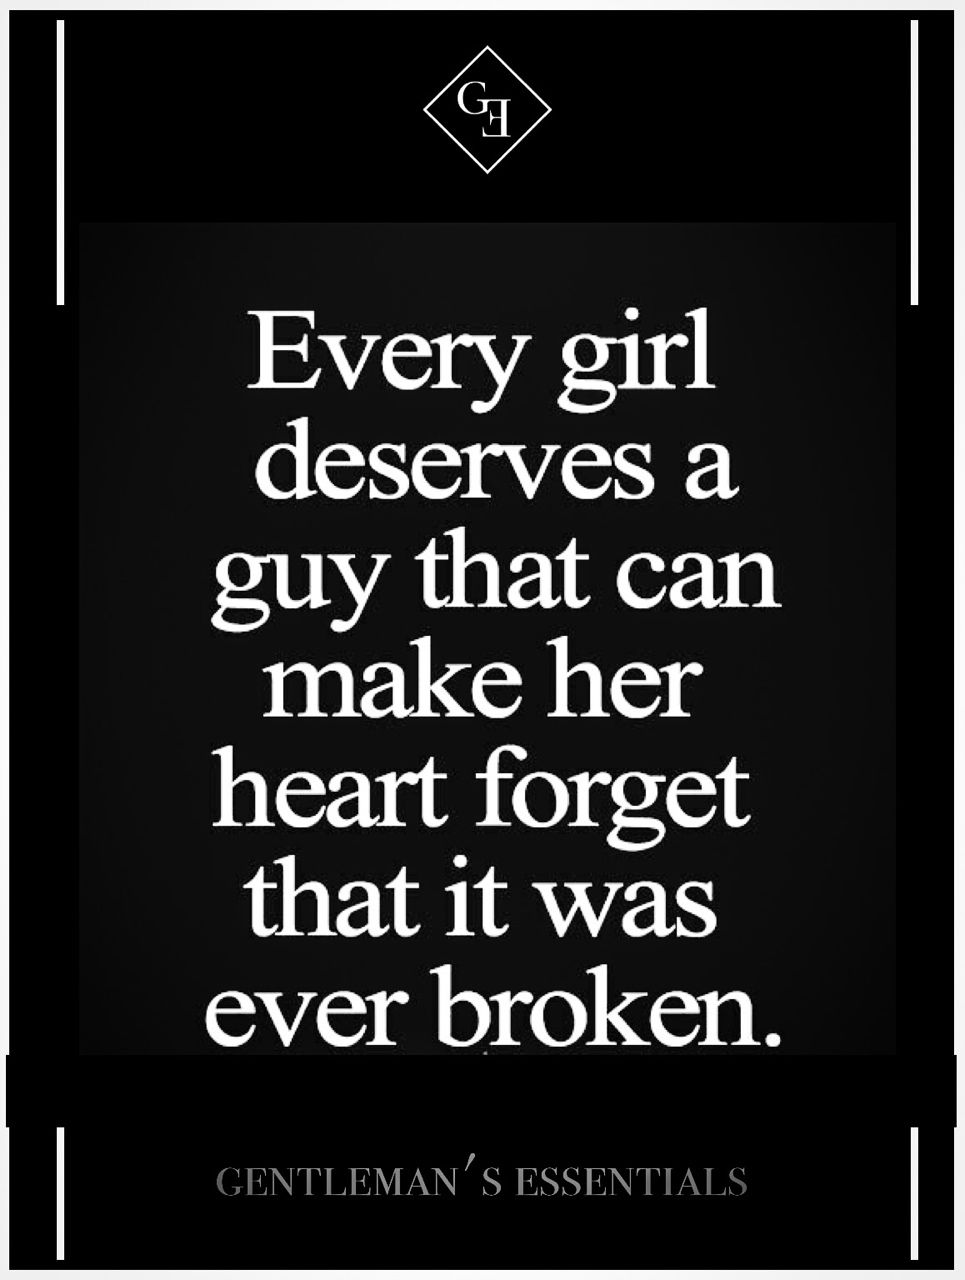 Perfect Love Quotes For Her Daily Quote Gentleman's Essentials  Relationships Feeling Quotes